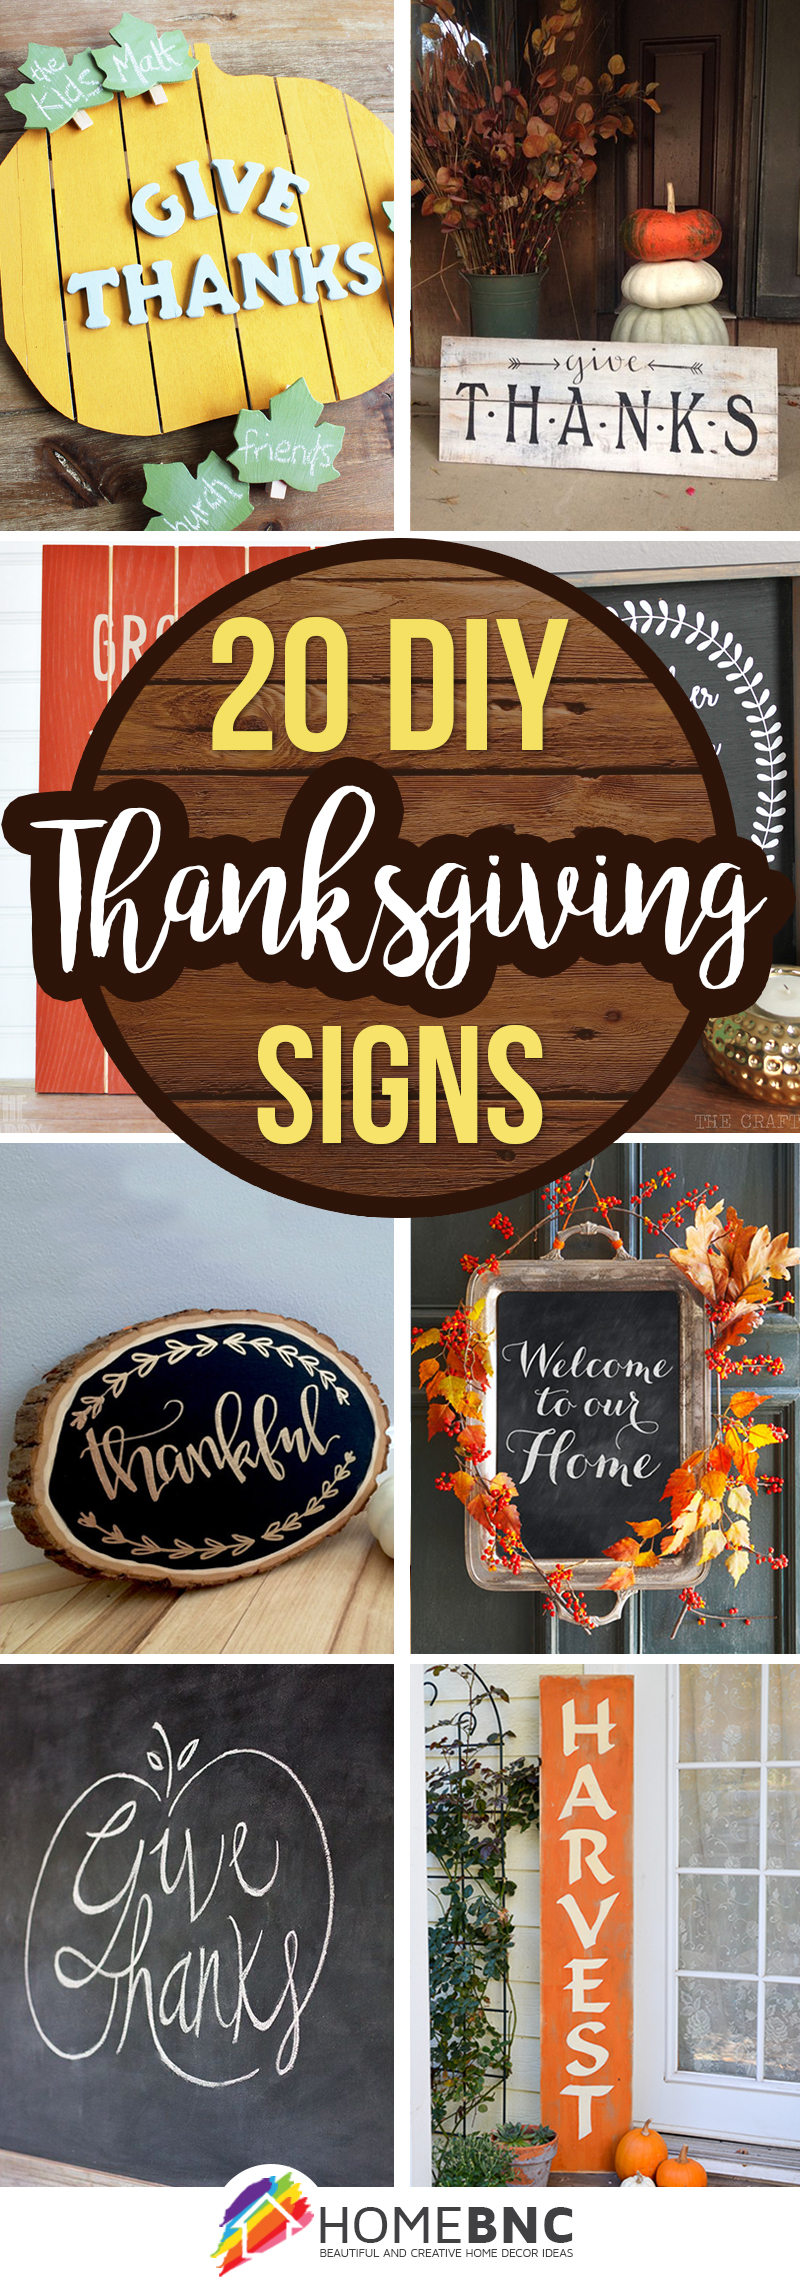 20 Best Diy Thanksgiving Signs Ideas And Designs For 2019